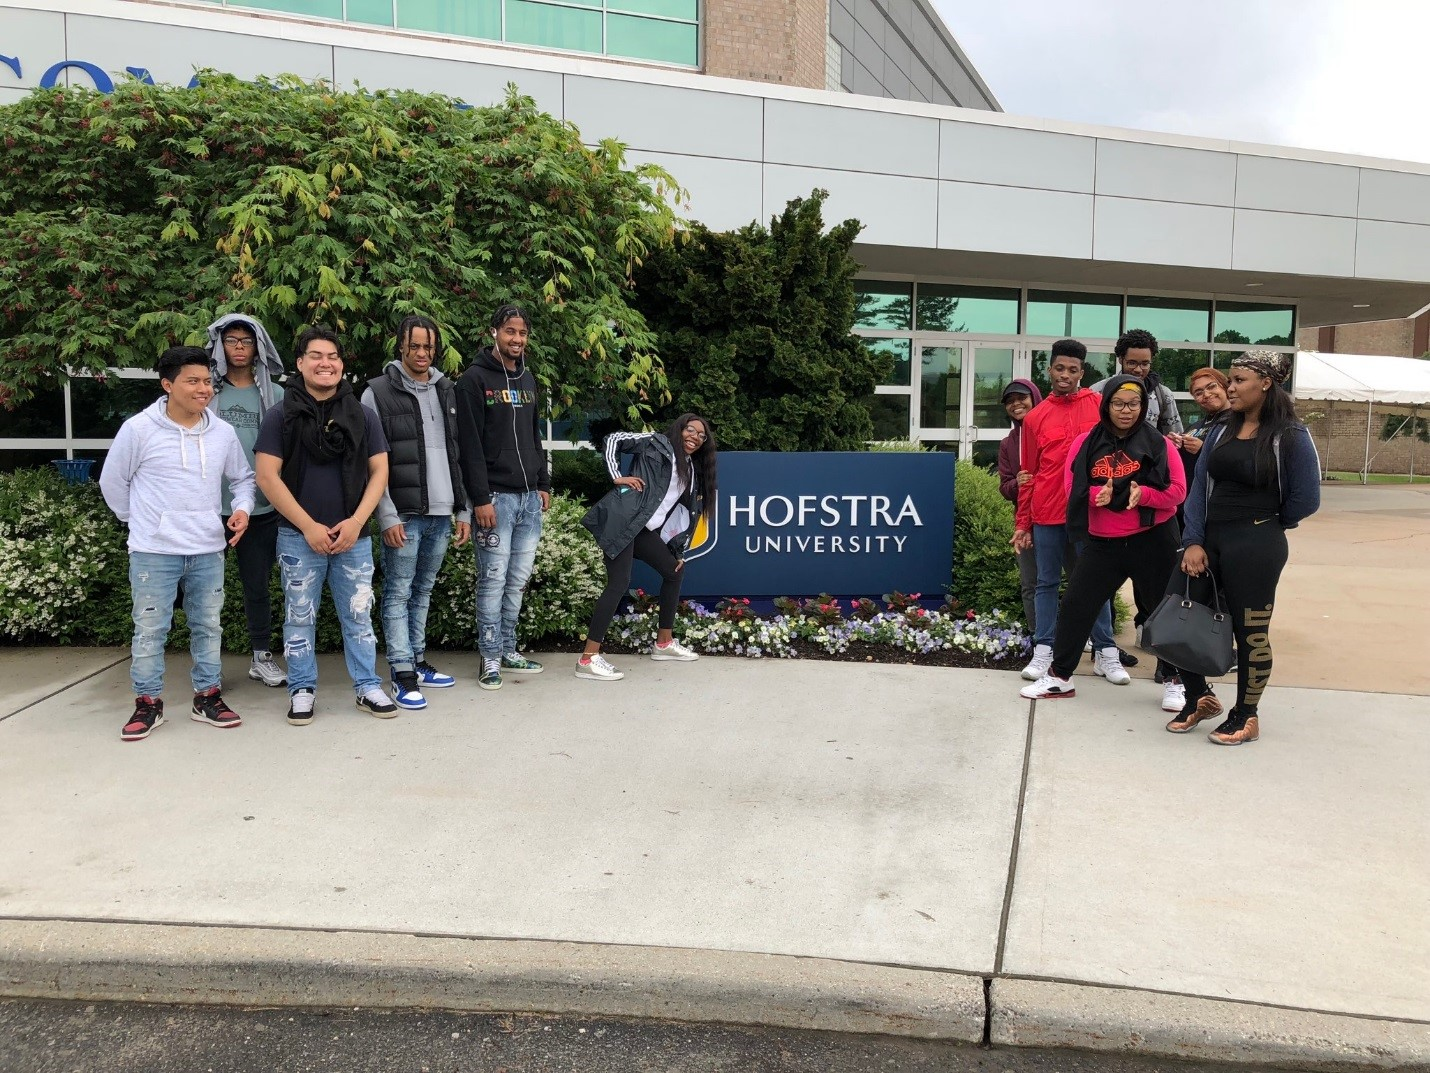 Students on their college trip to Hofstra University